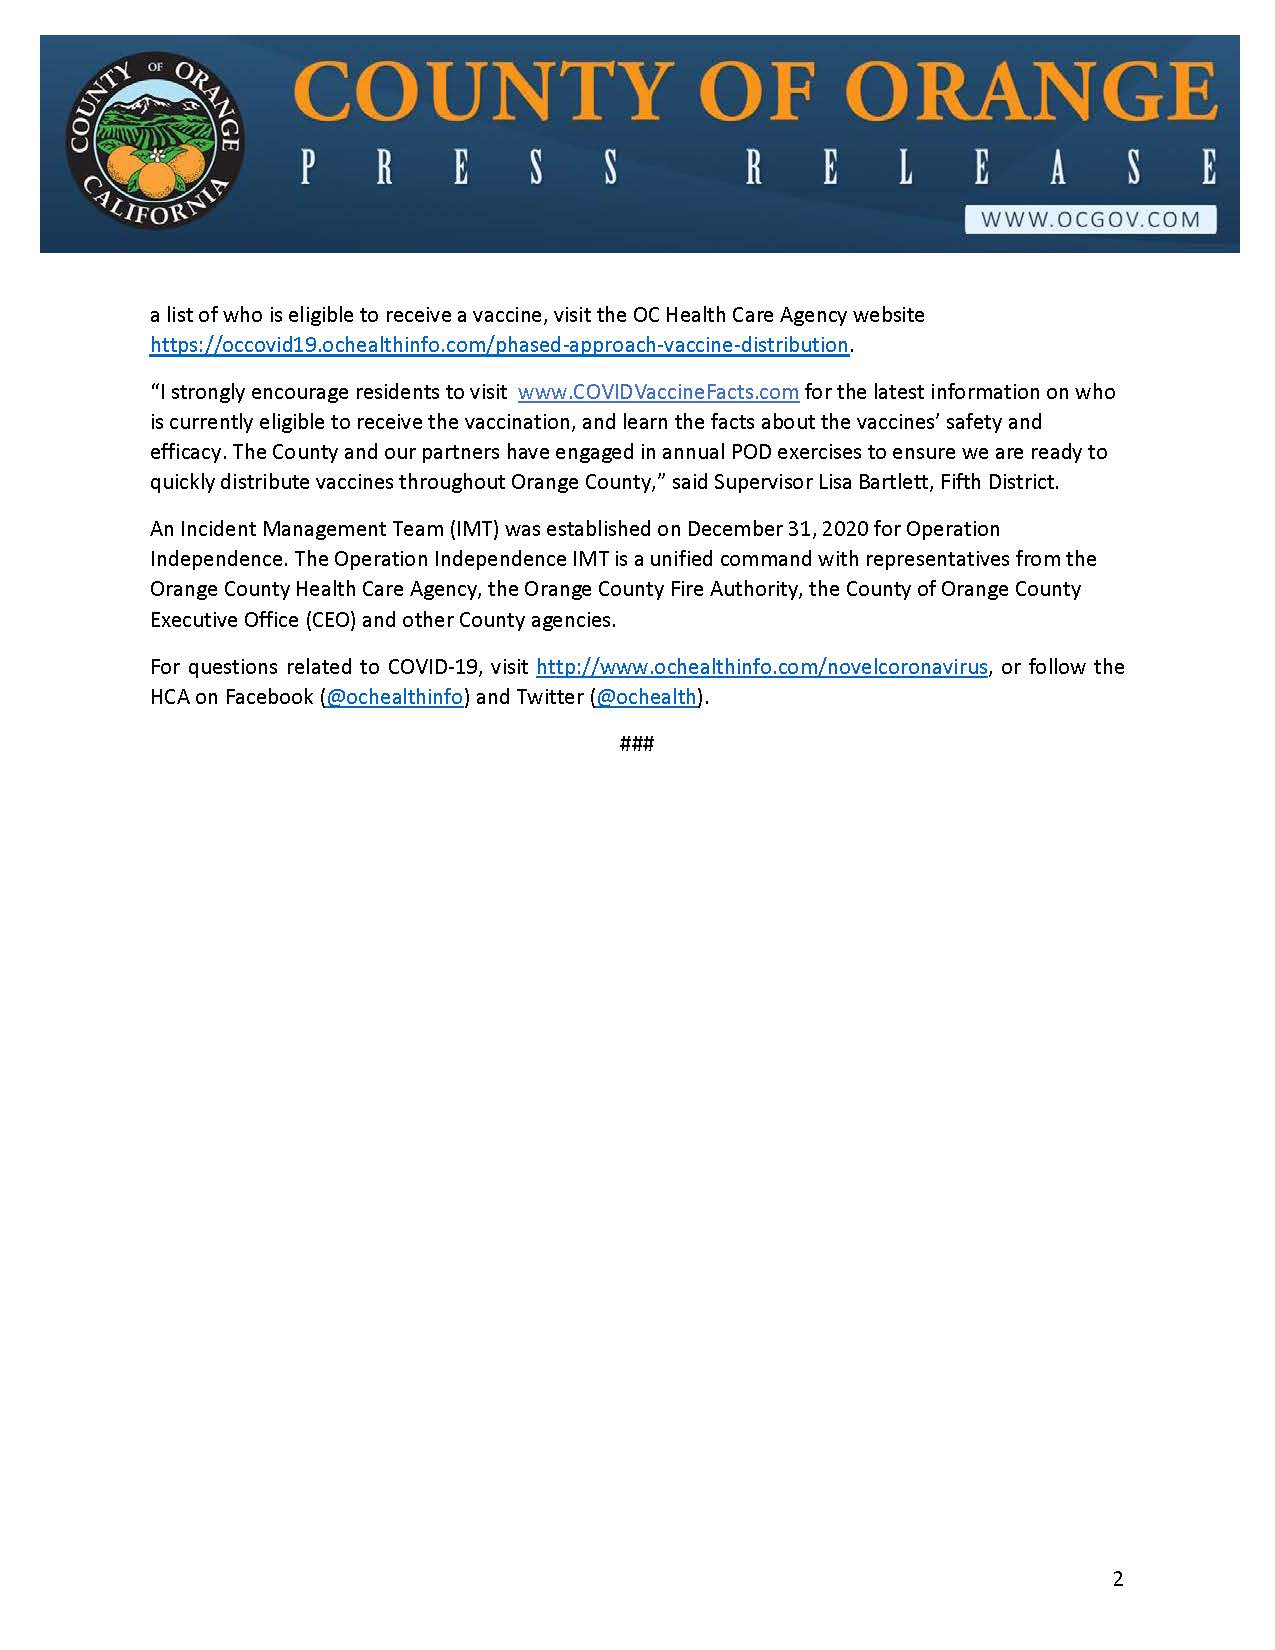 Press Release_County of Orange IMT and Super PODs 1-7-21_Page_2